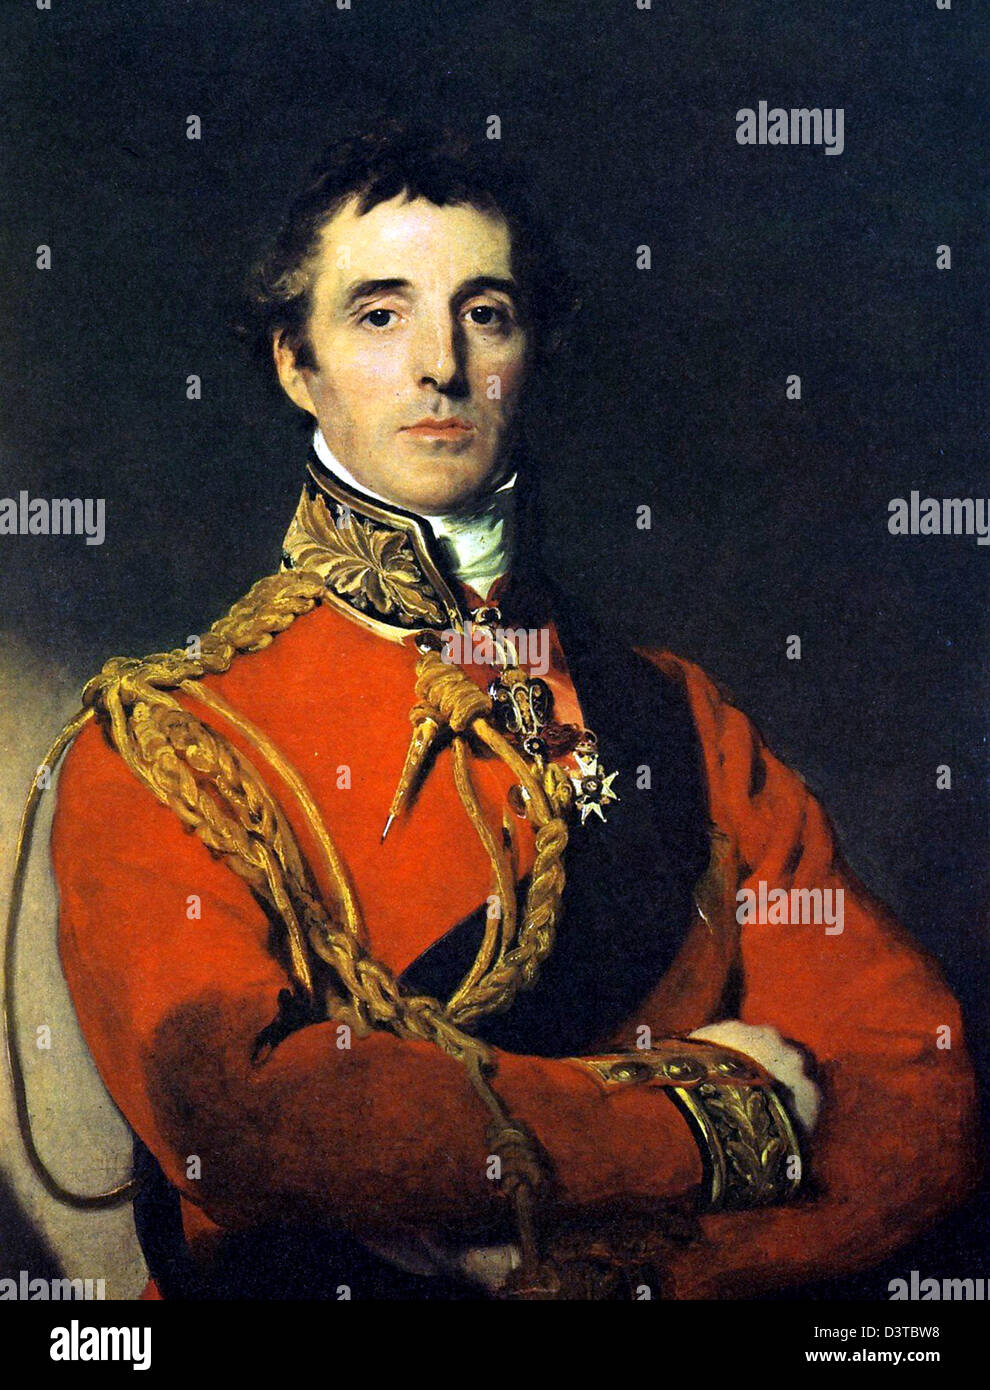 Duke of Wellington, Portrait of Arthur Wellesley, 1st Duke of Wellington and Prime Minister of UK - Stock Image